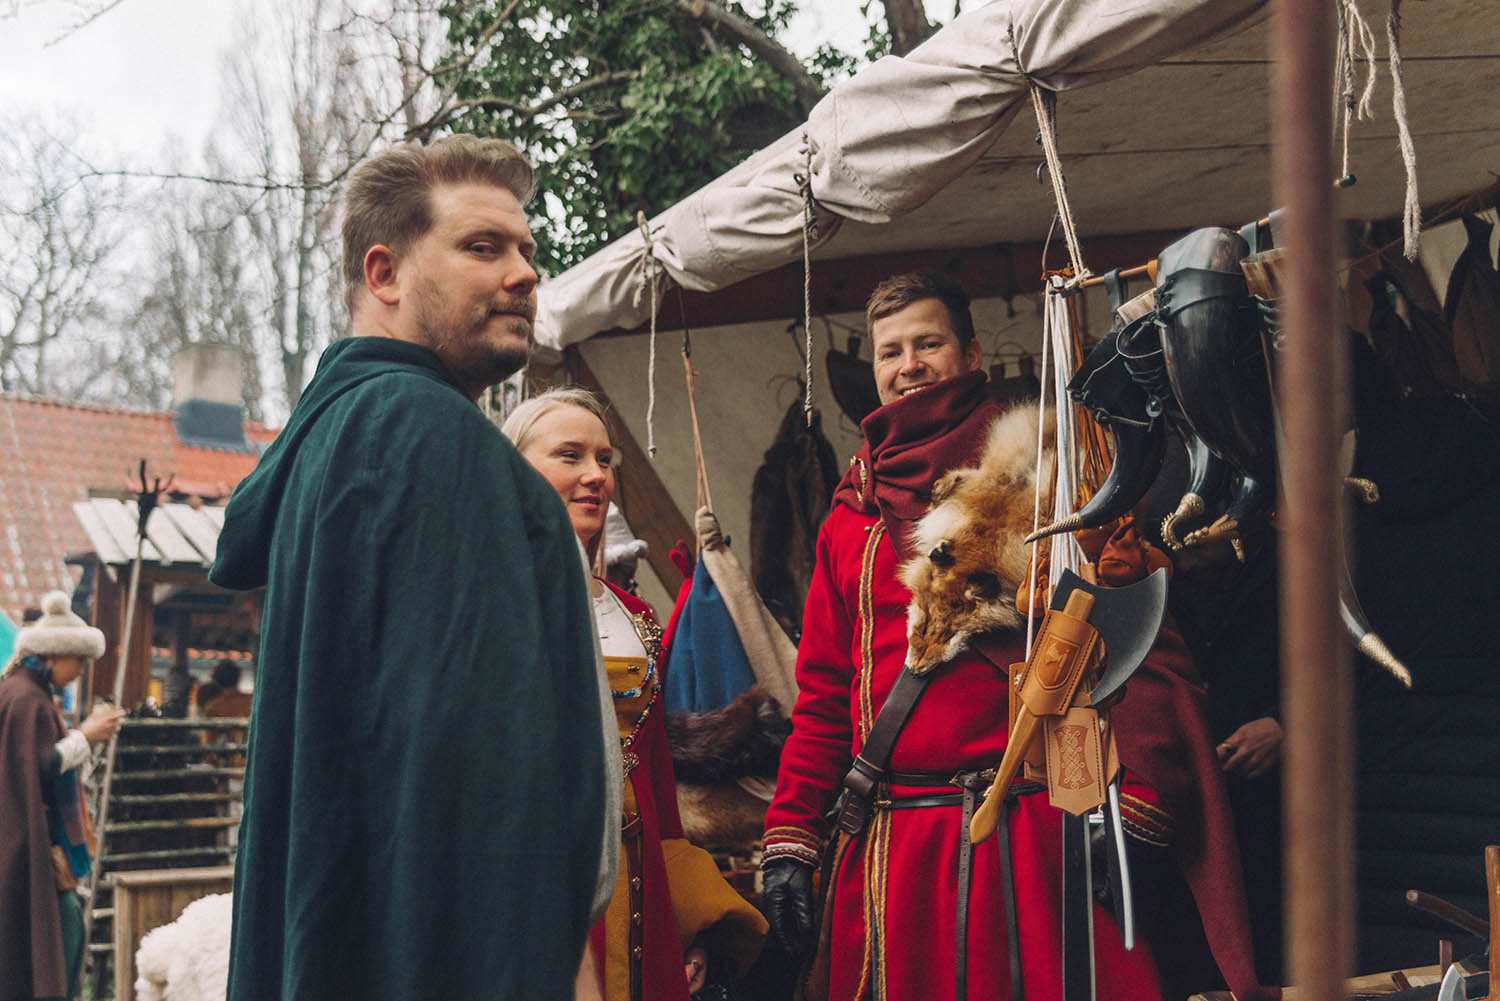 Medieval Outfits at Medieval Christmas in Visby